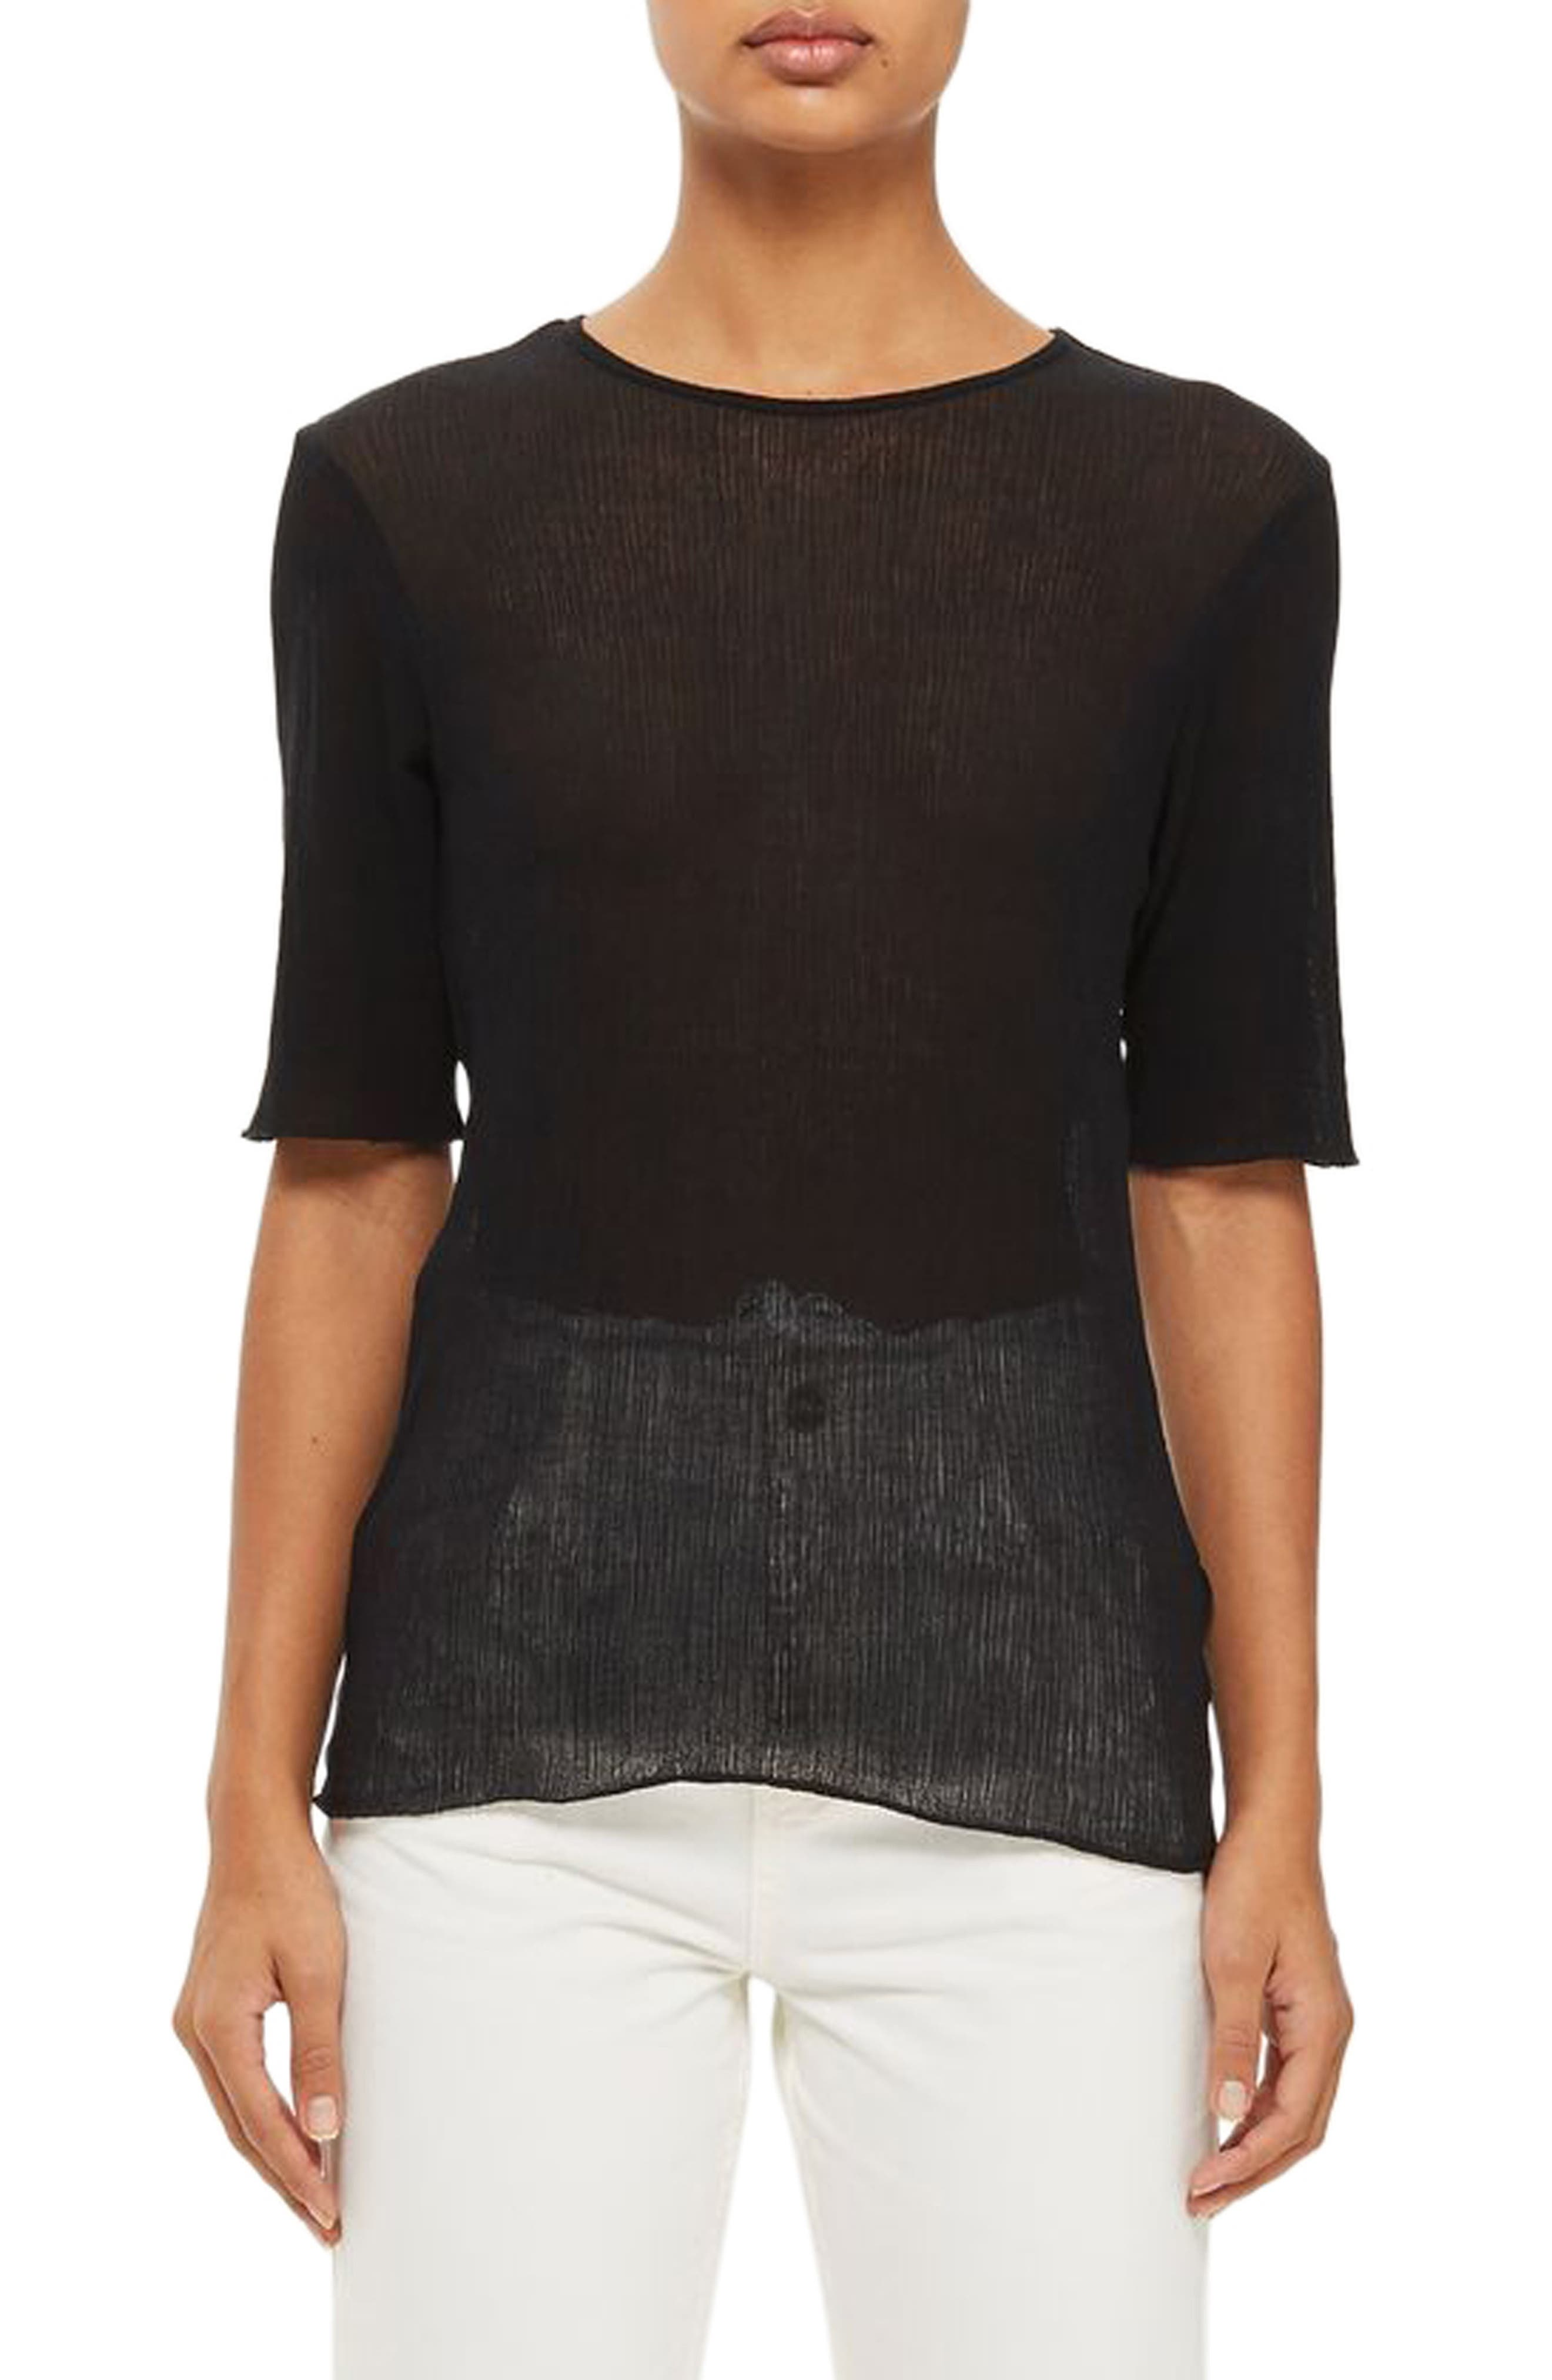 Topshop Boutique Crinkle Tee